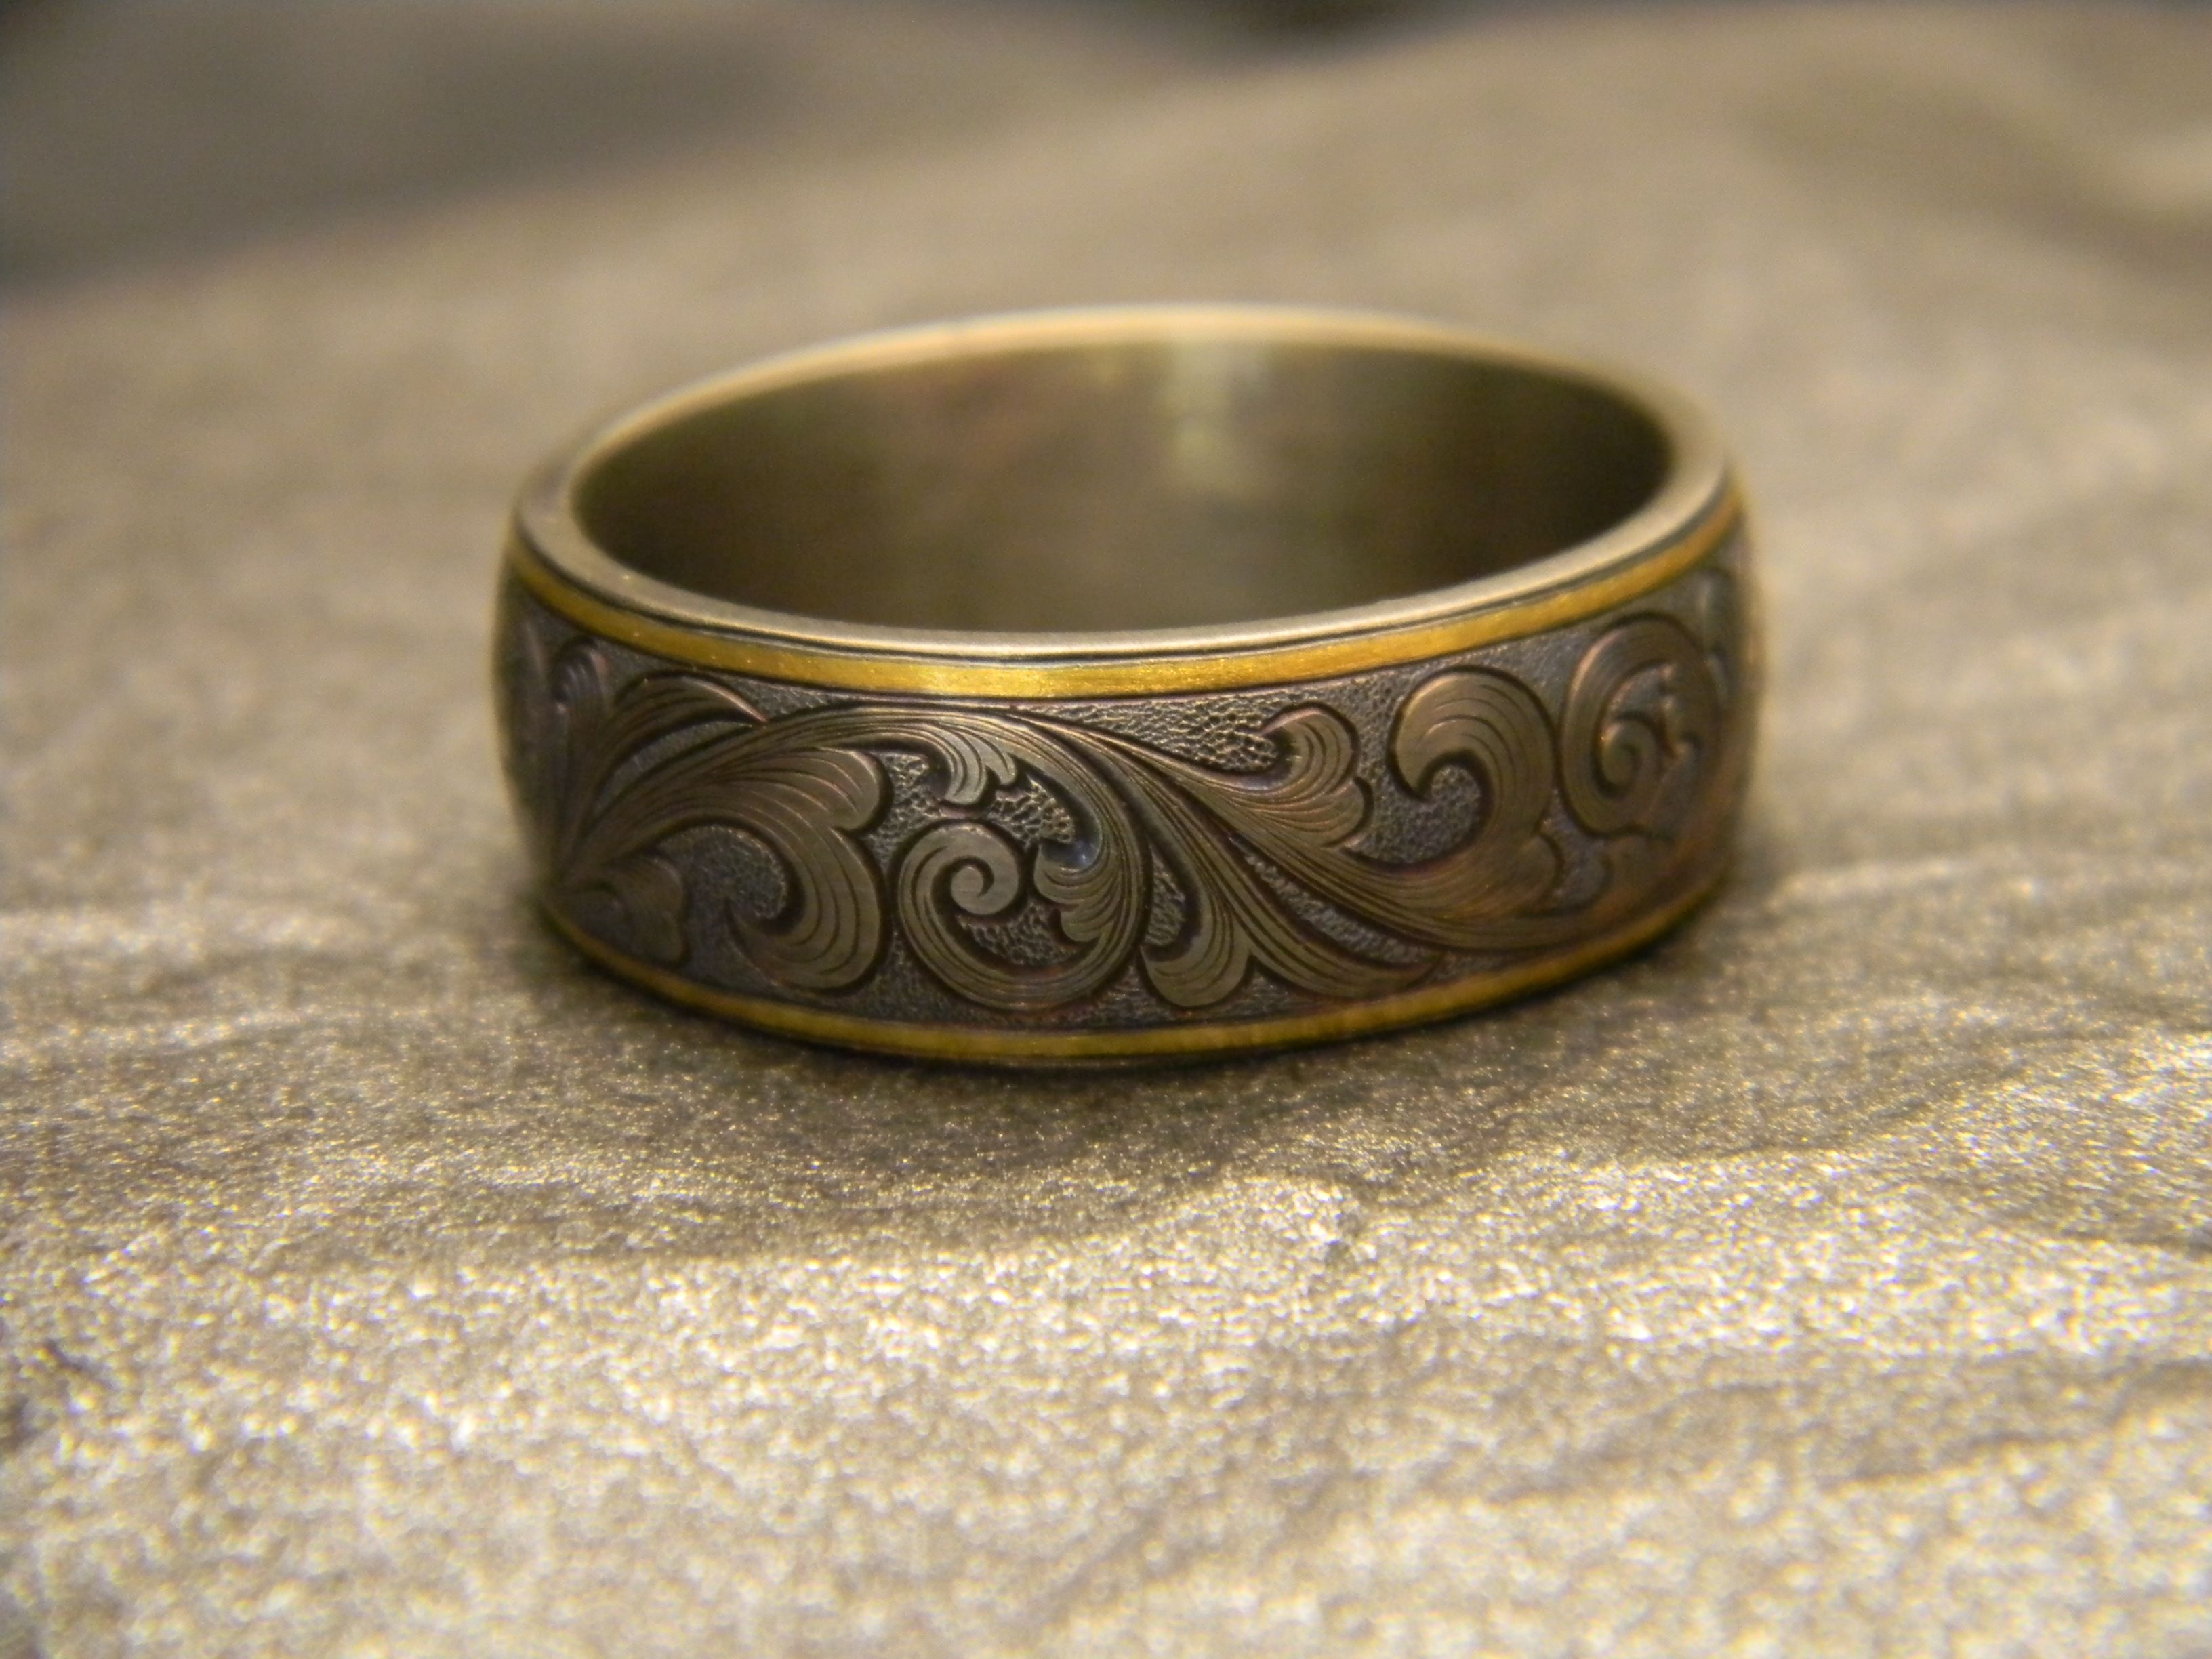 8mm Titanium Engraved Ring with 24K Gold Rims with JHook